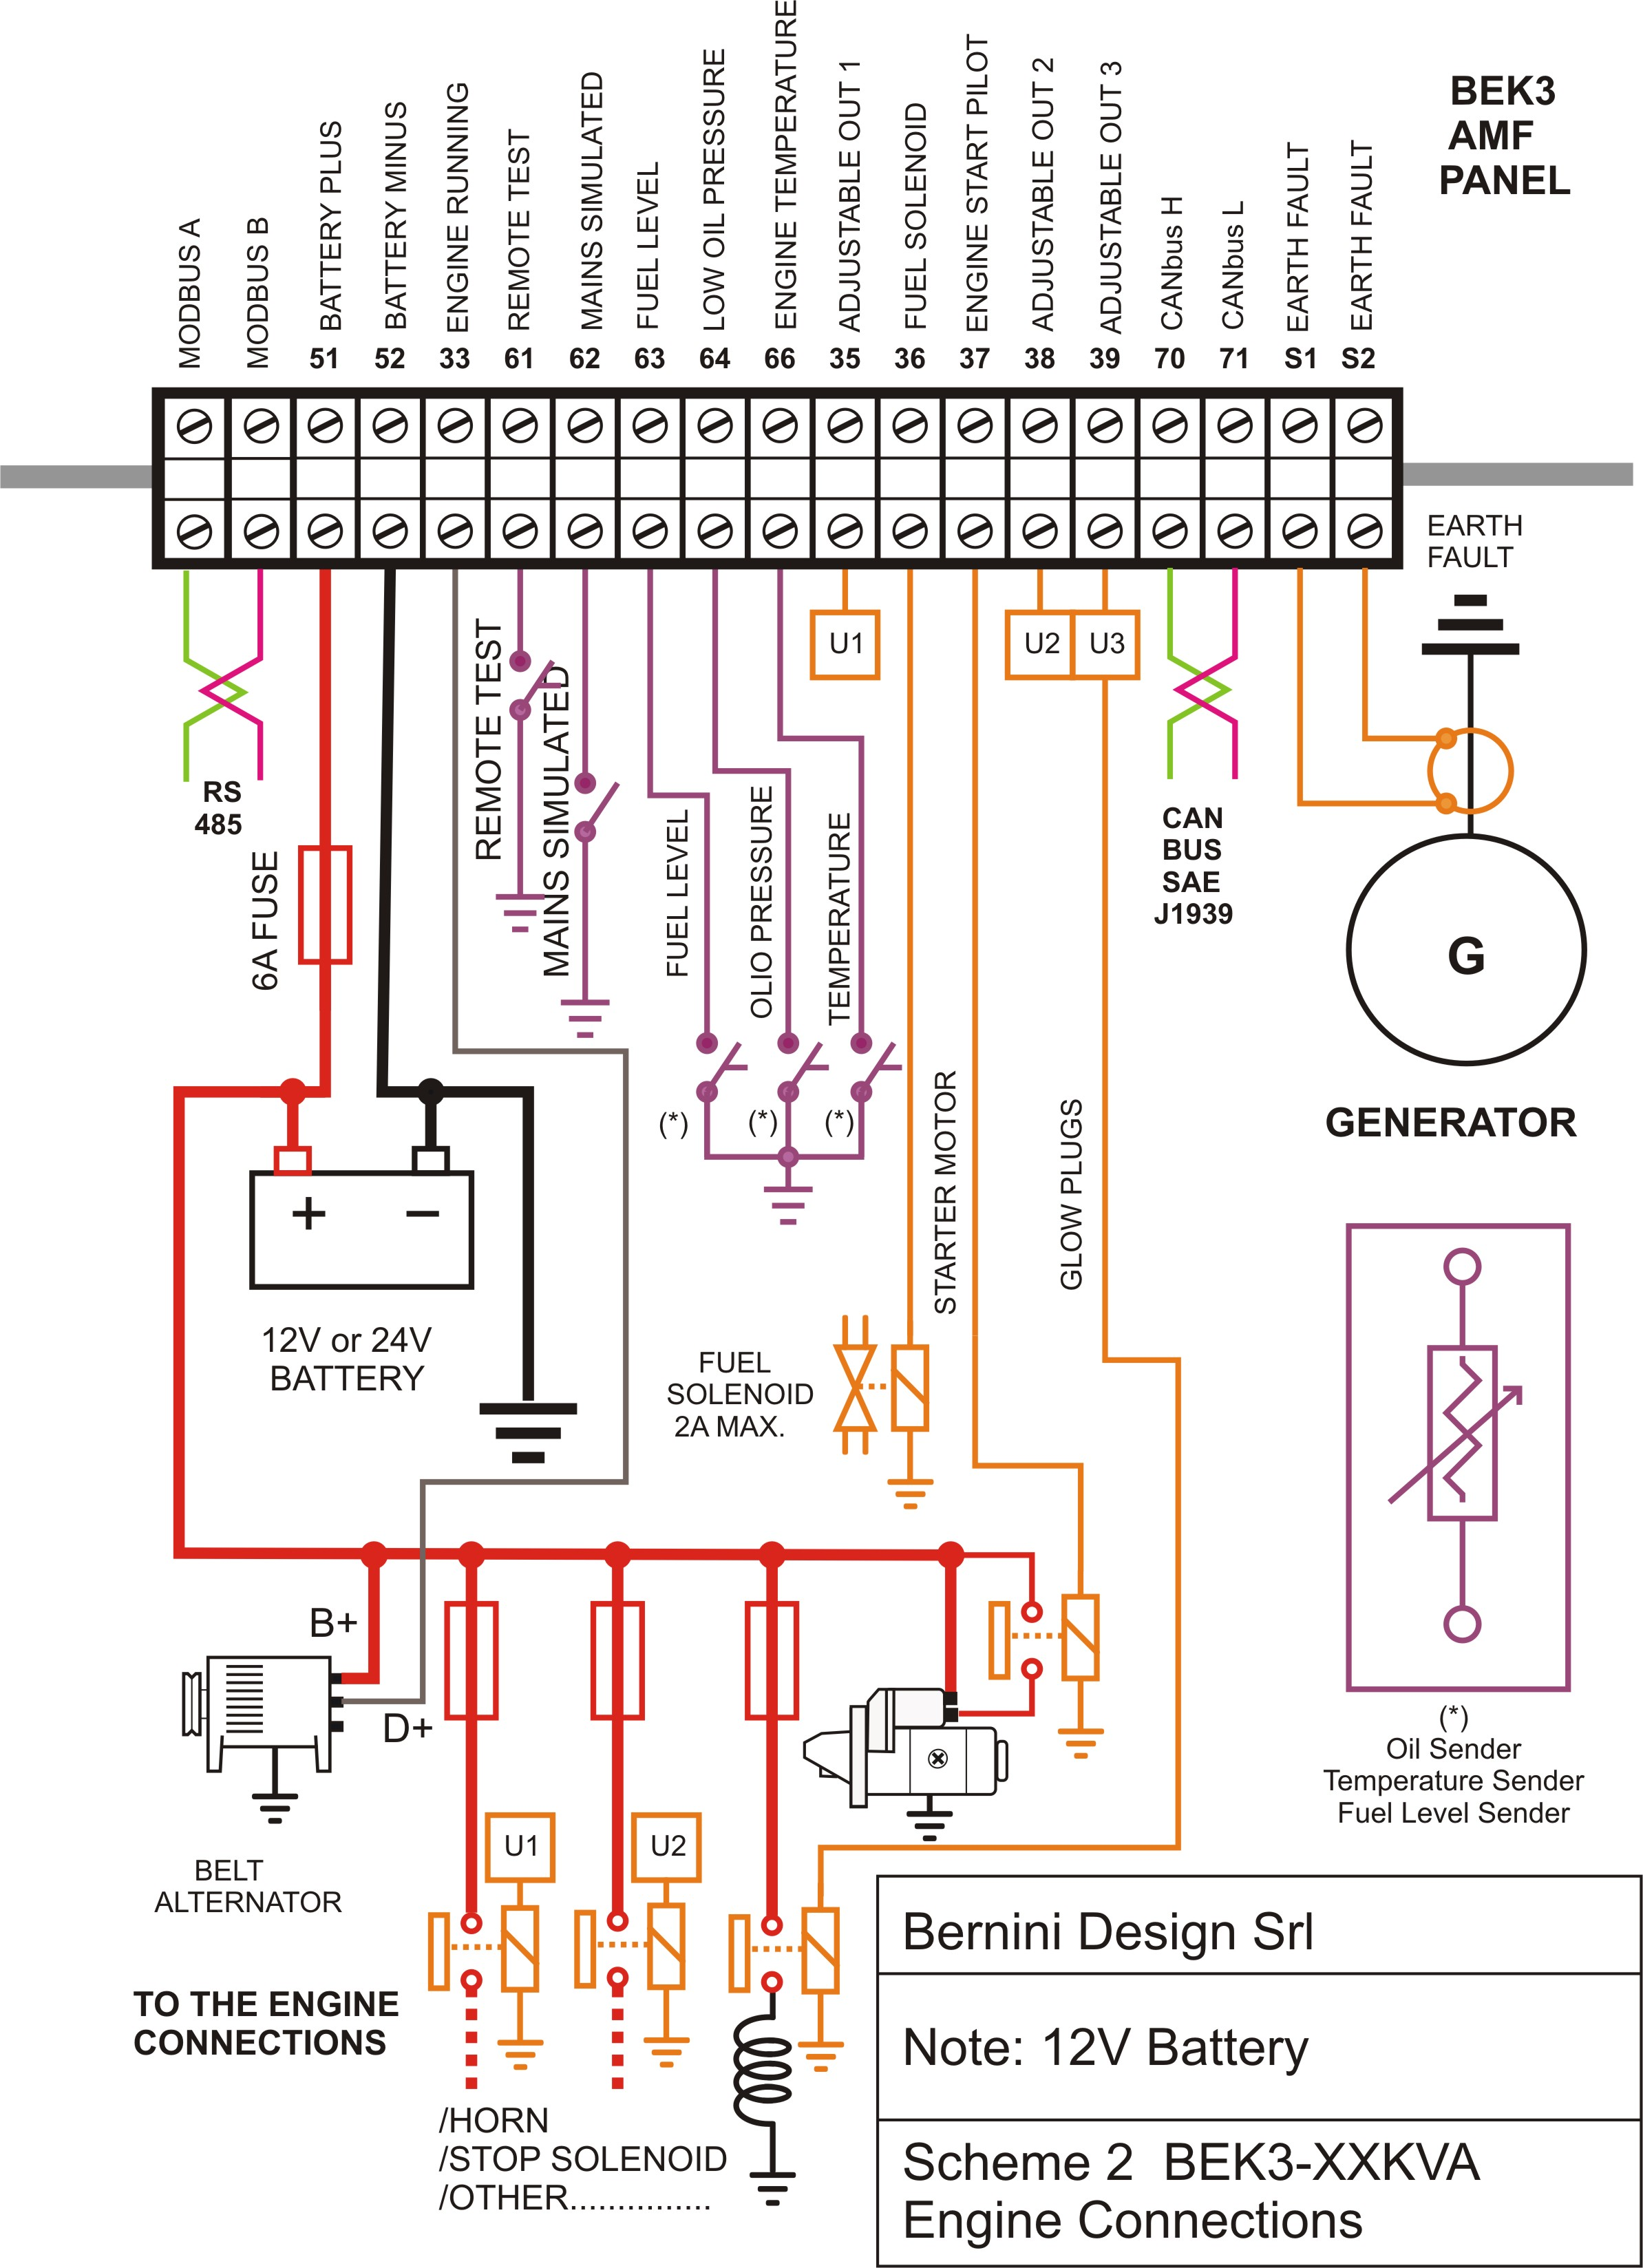 Diesel Generator Control Panel Wiring Diagram Engine Connections wiring diagram generator readingrat net stamford generator wiring diagram at nearapp.co